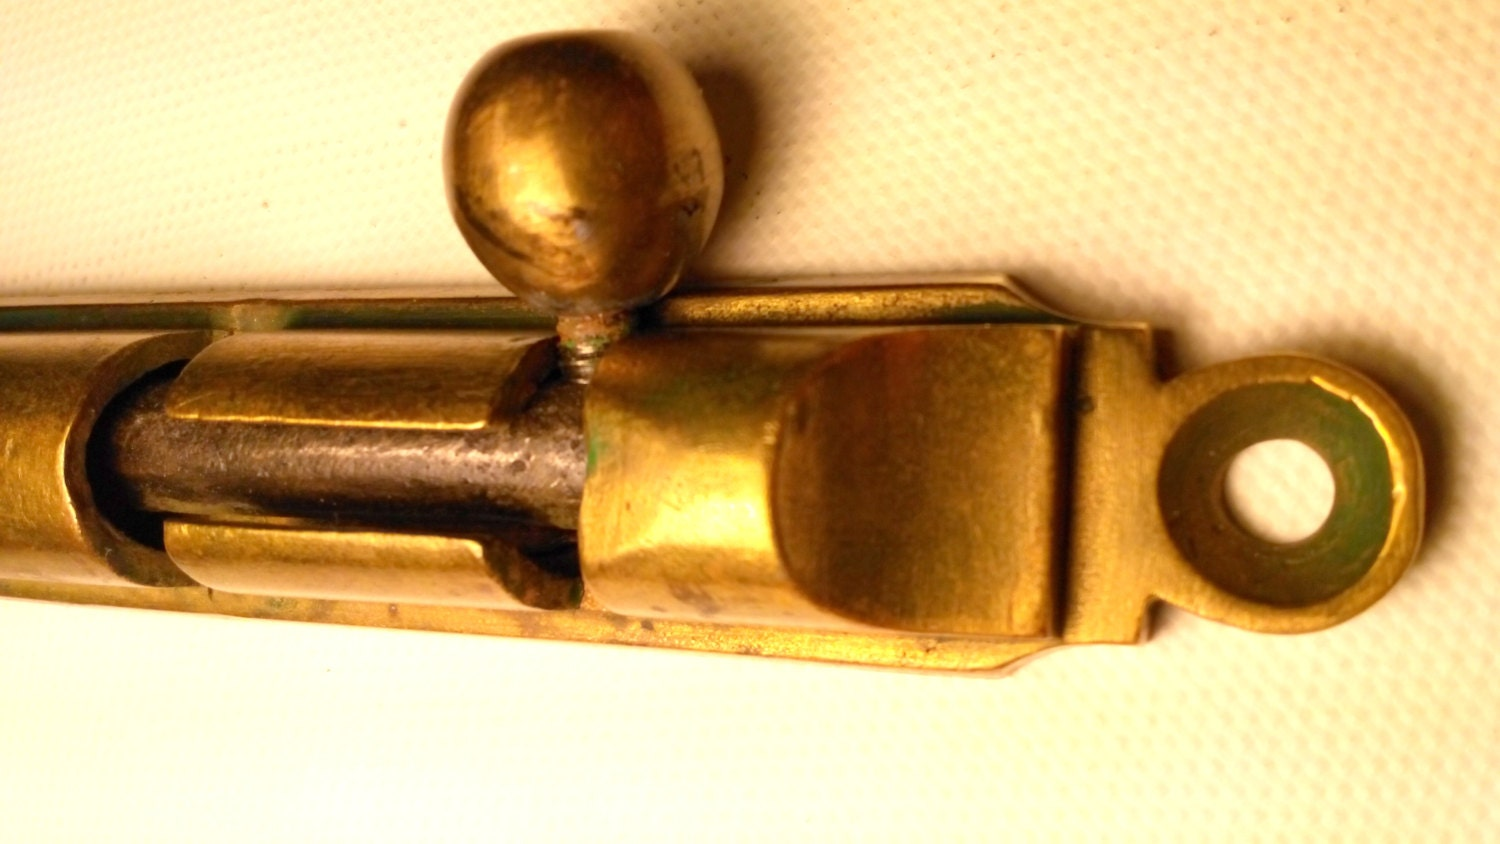 Sold by AlexZvintage - Antique Solid Brass Barrel Bolt Slide Door Lock, Vintage Brass